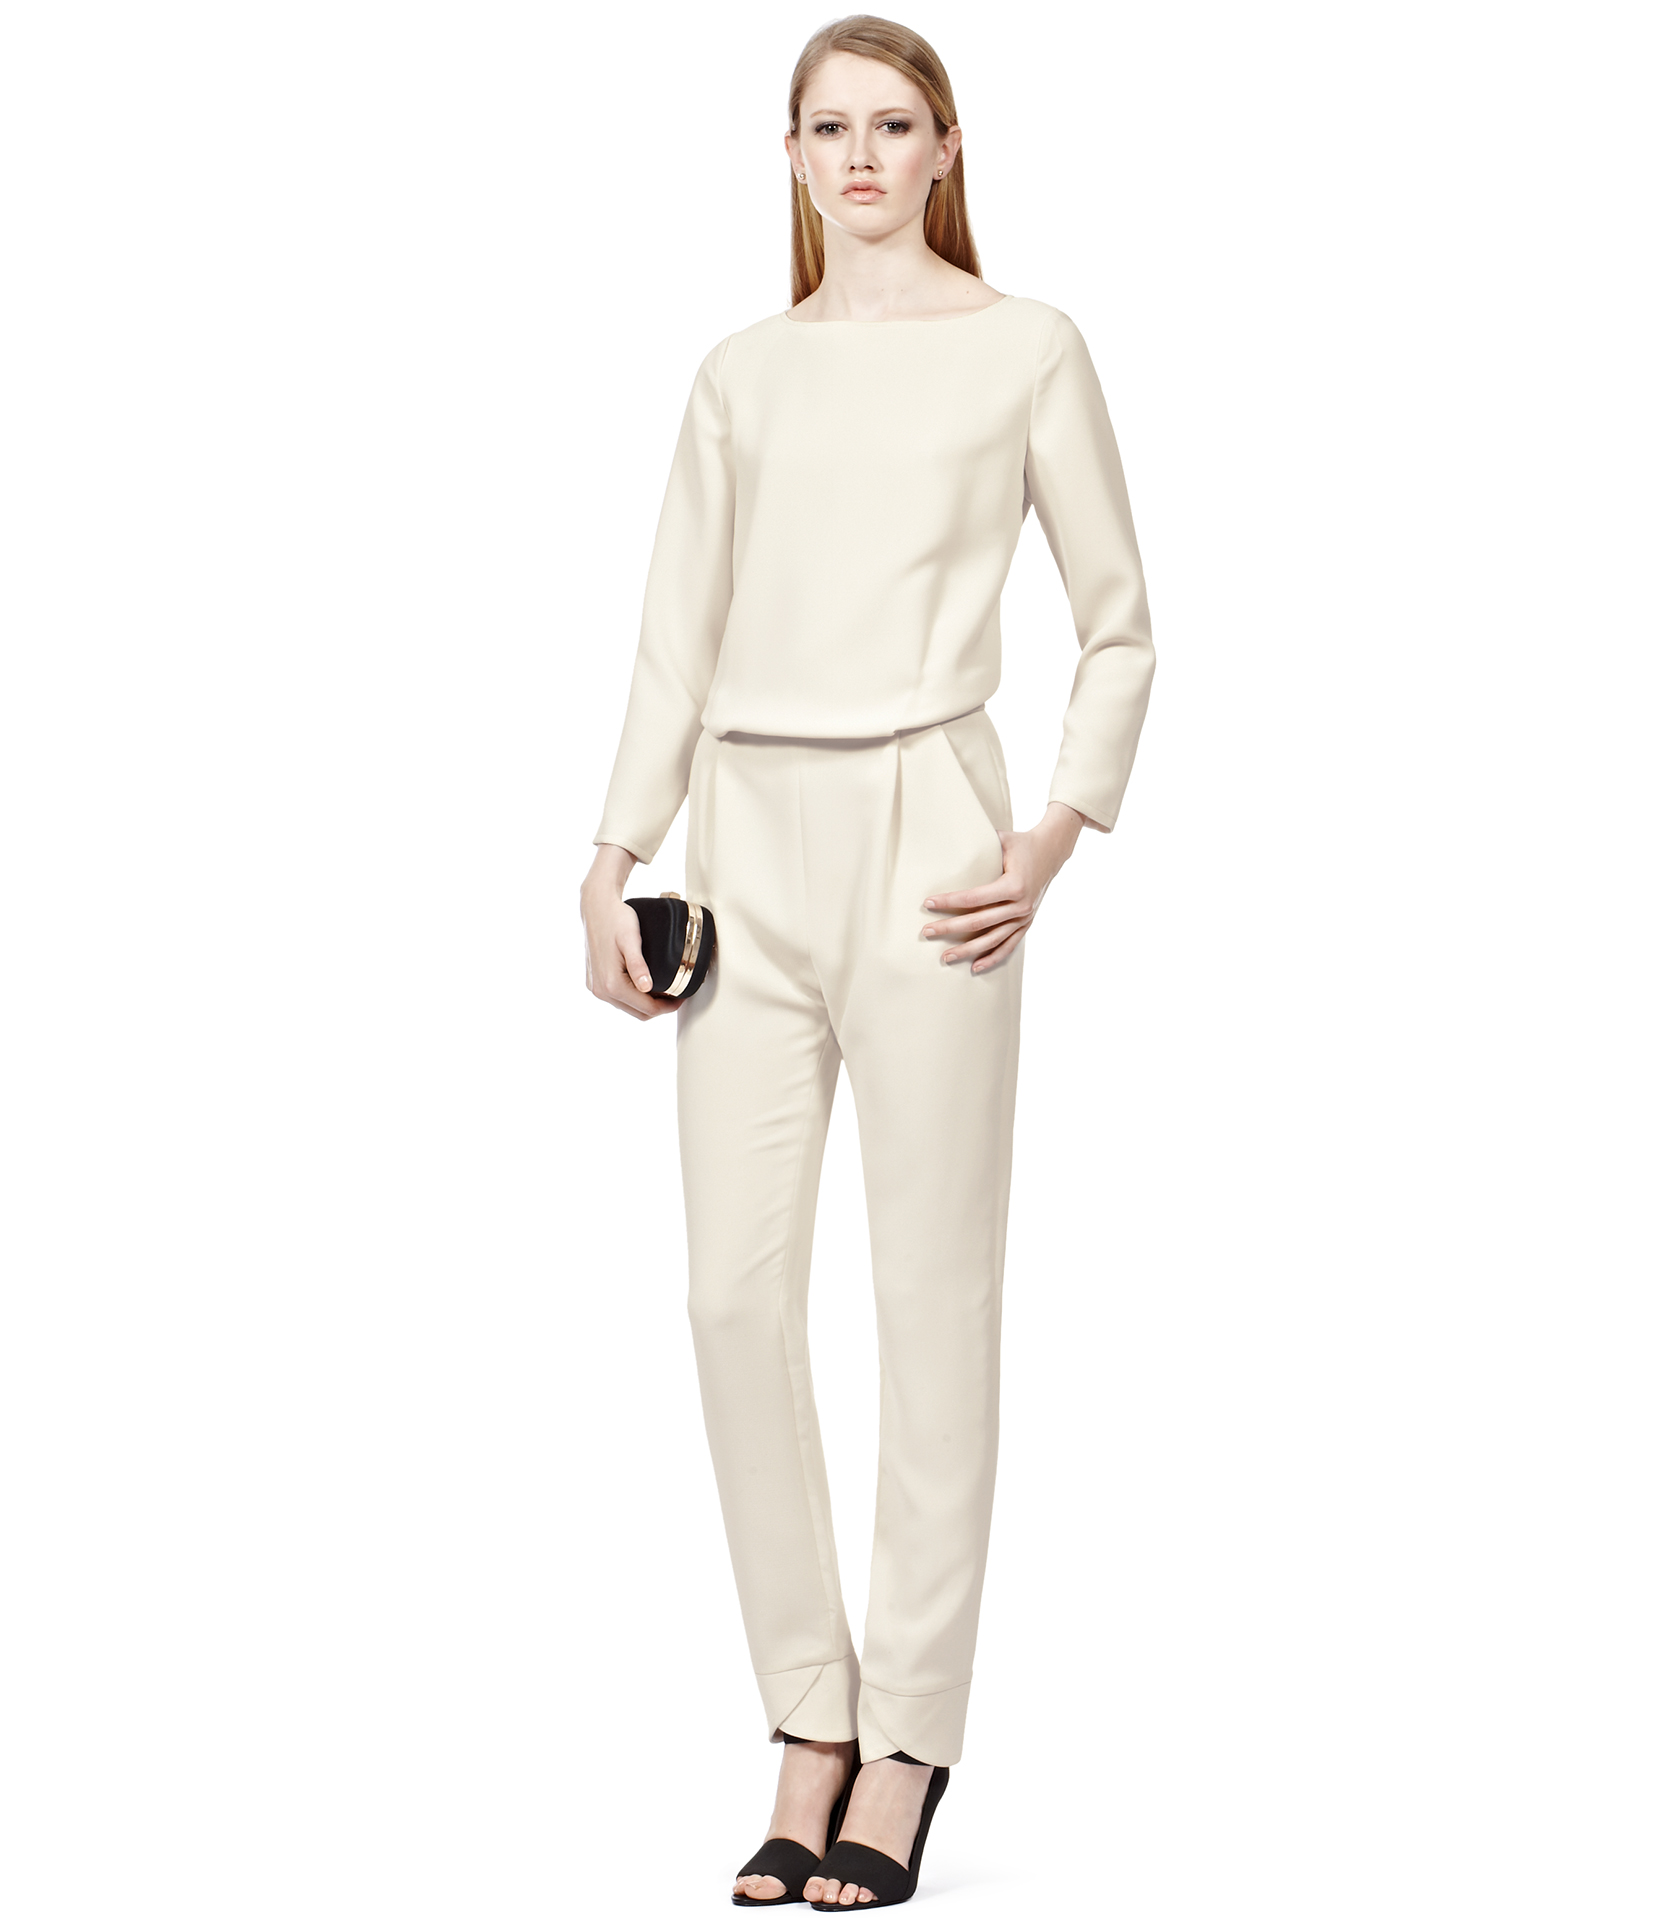 8e0437b2c0 Lyst - Reiss Link Slouch Lounge Suit in Natural